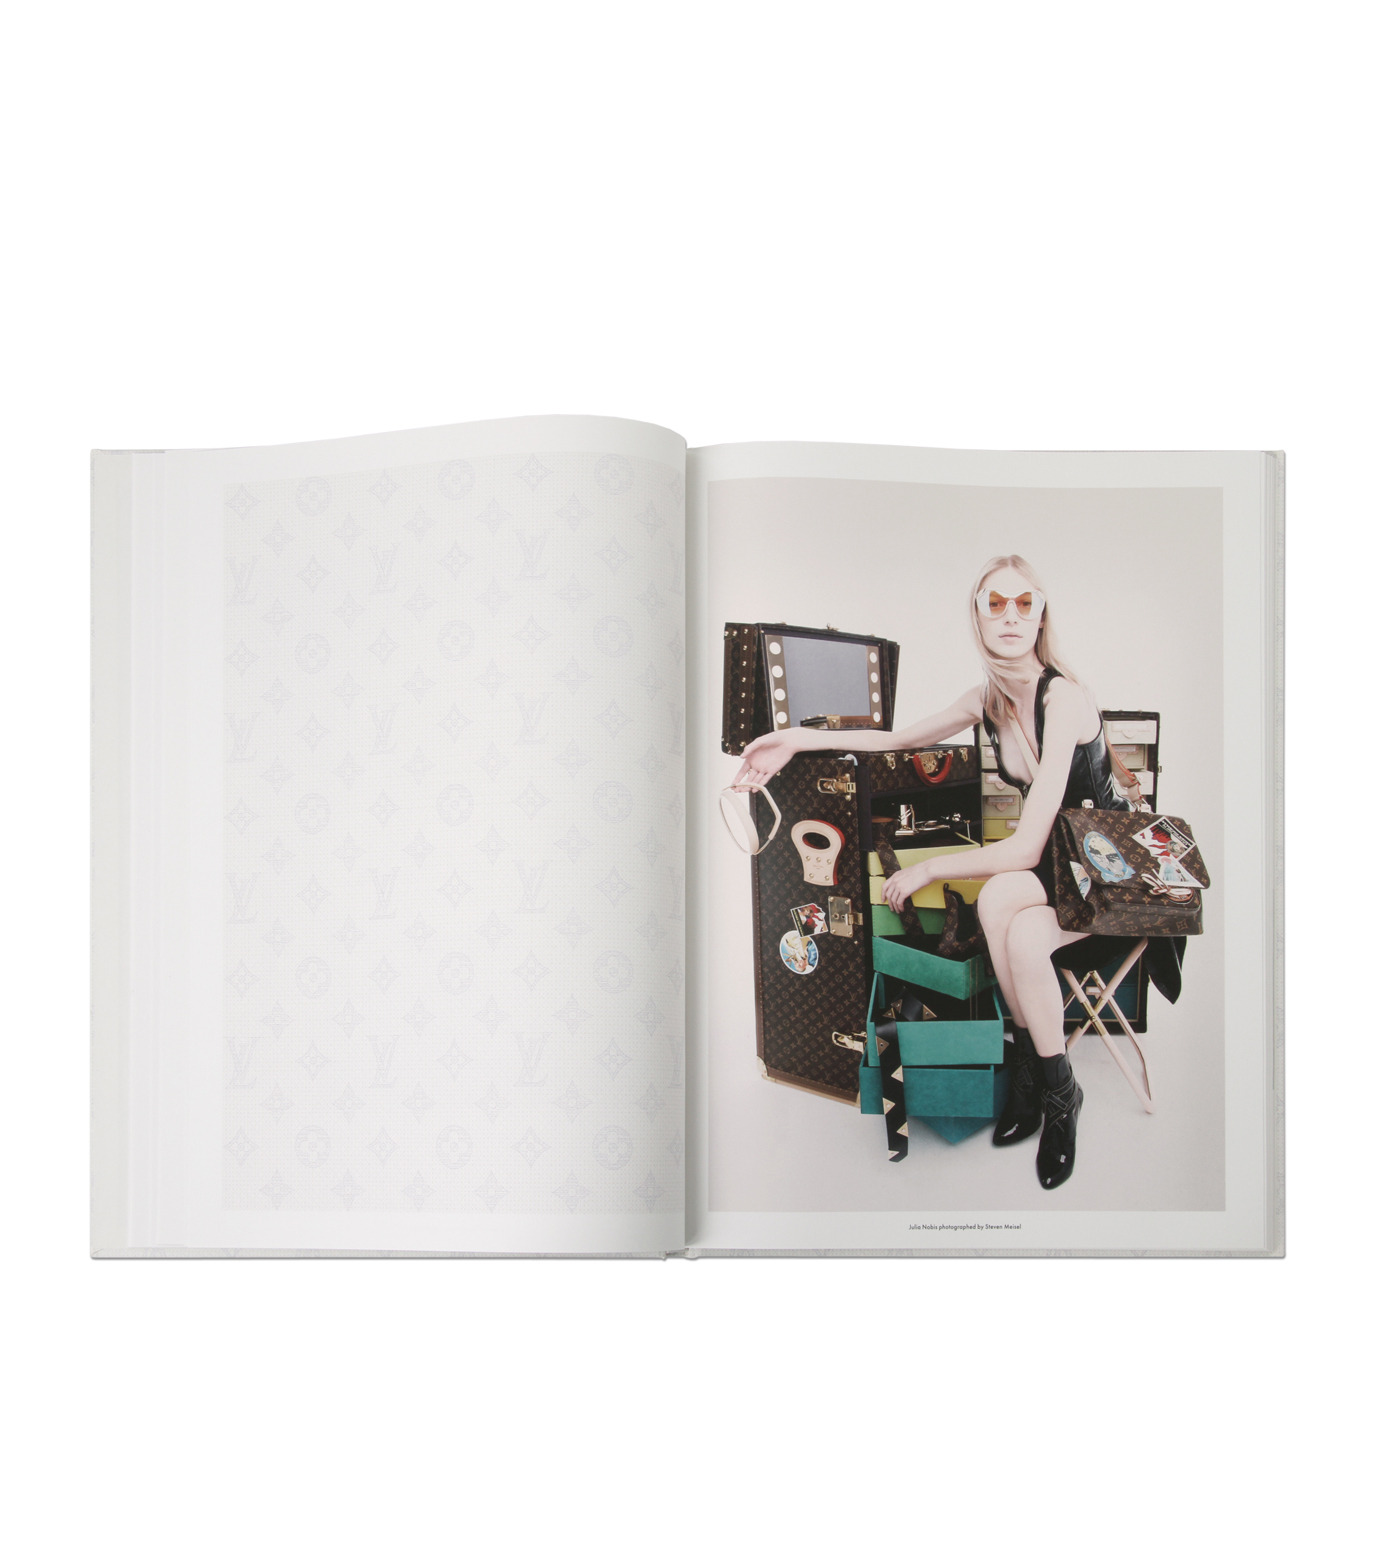 ArtBook(アートブック)のLouis Vuitton: The Icon and the Iconoclasts - A Celebration of Monogram.-WHITE(インテリア/OTHER-GOODS/interior/OTHER-GOODS)-8478-4560-6-4 拡大詳細画像3